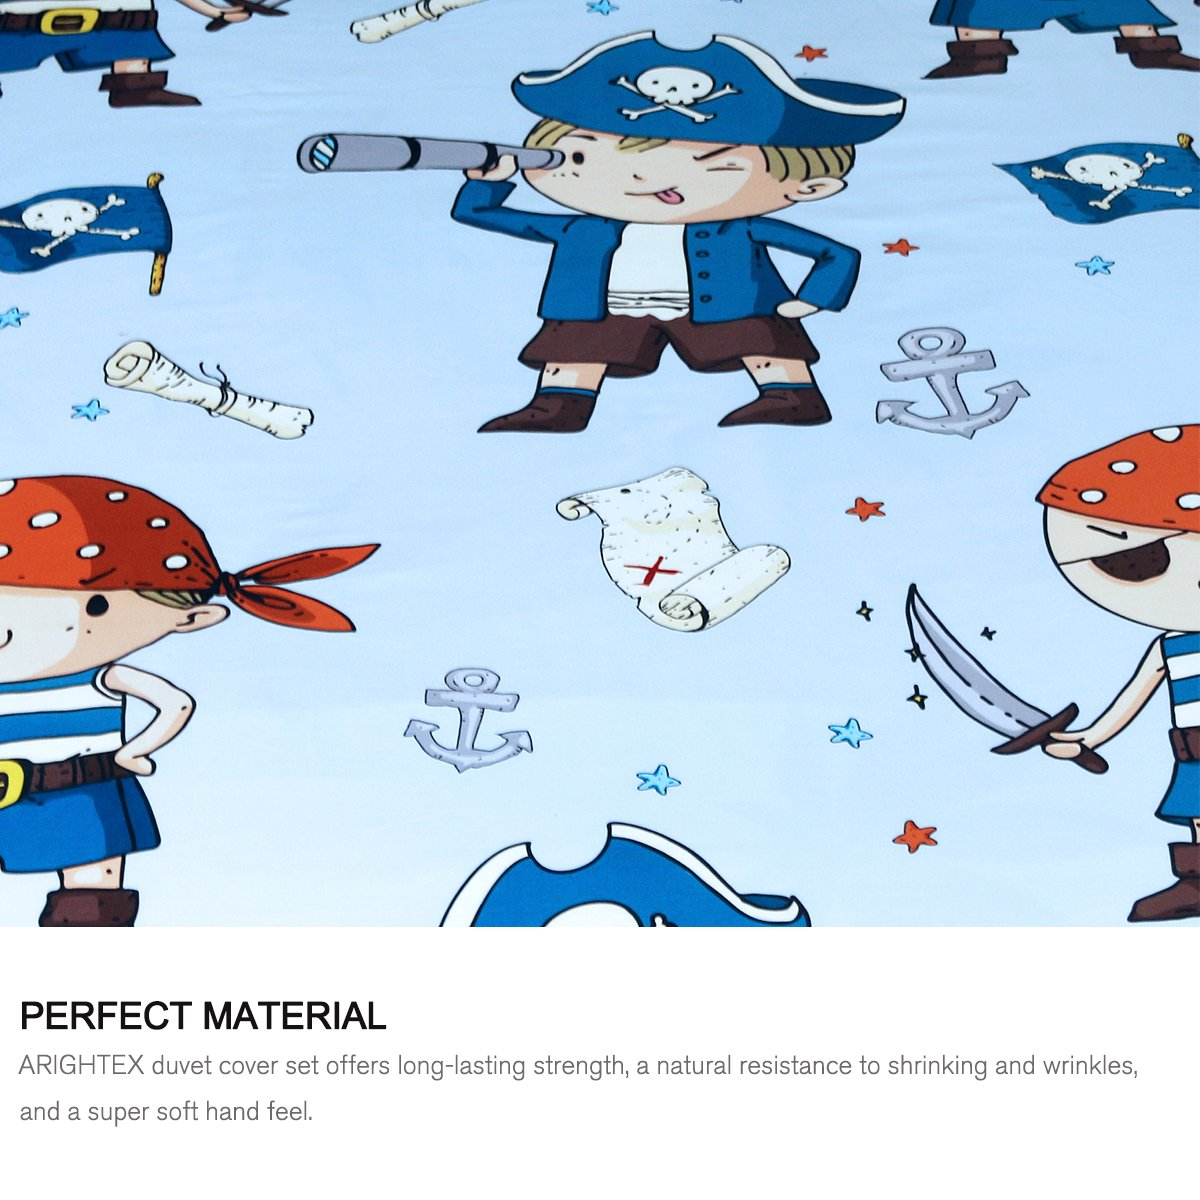 ARIGHTEX Pirate Boy Blanket Nautical Themed Sherpa Fleece Blanket Ultra Soft Blue and Orange Pirates Teens college dorm throw blanket (50 x 60 Inches) by ARIGHTEX (Image #3)